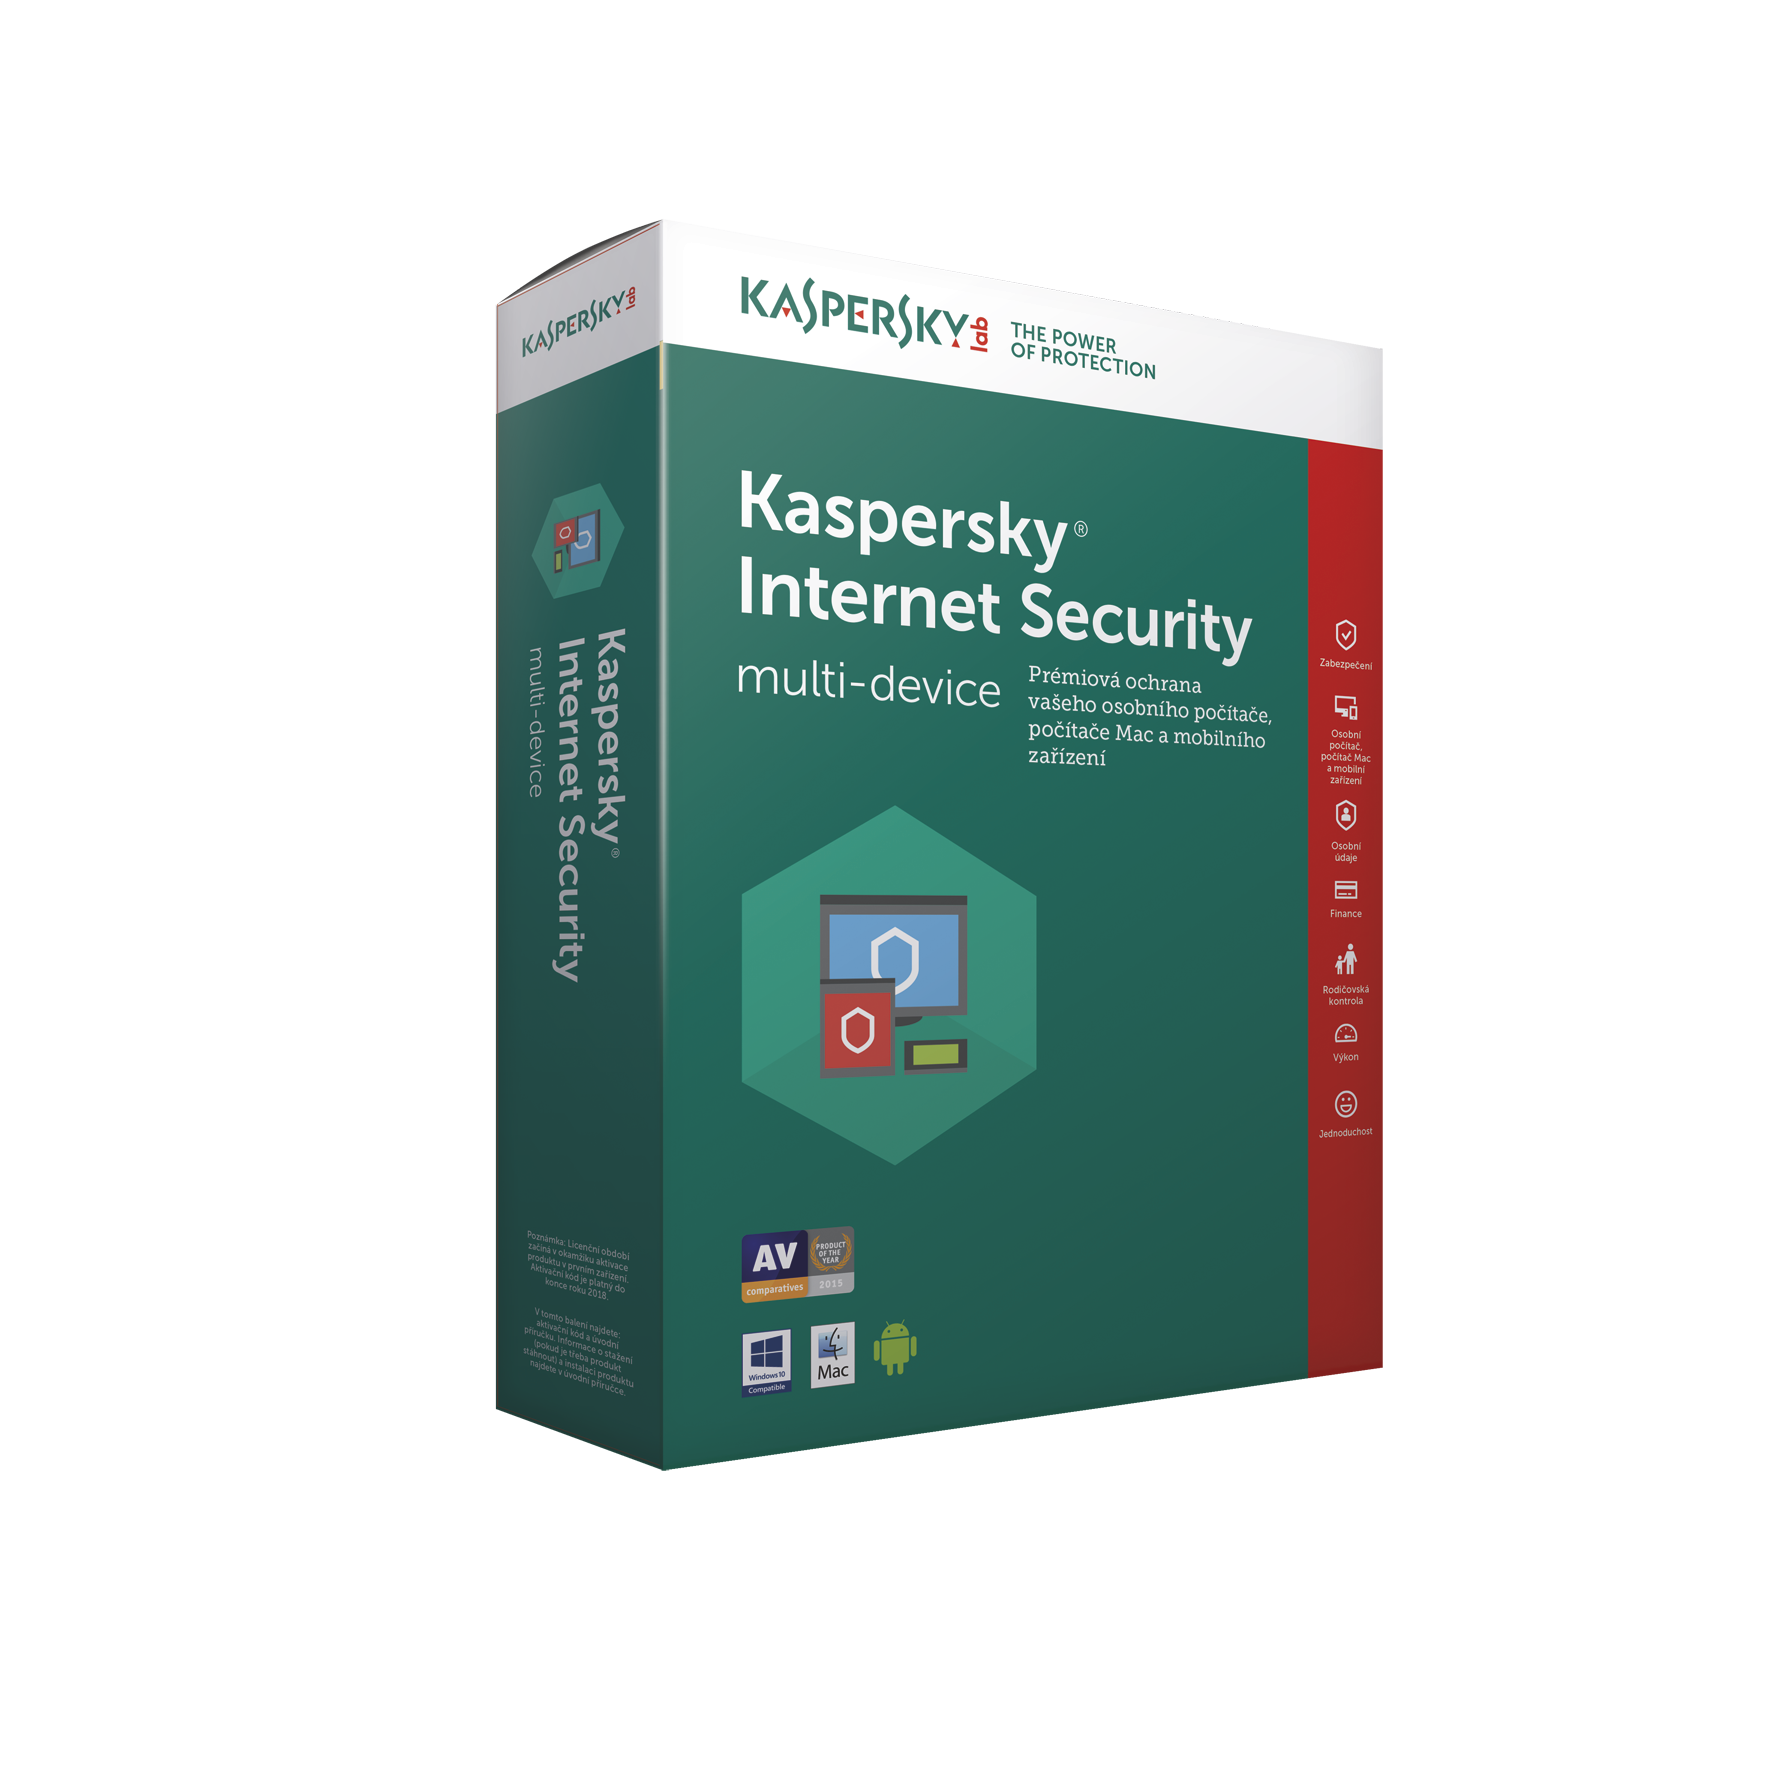 Kaspersky Internet Security 2019, 4x,2 roky,obnova